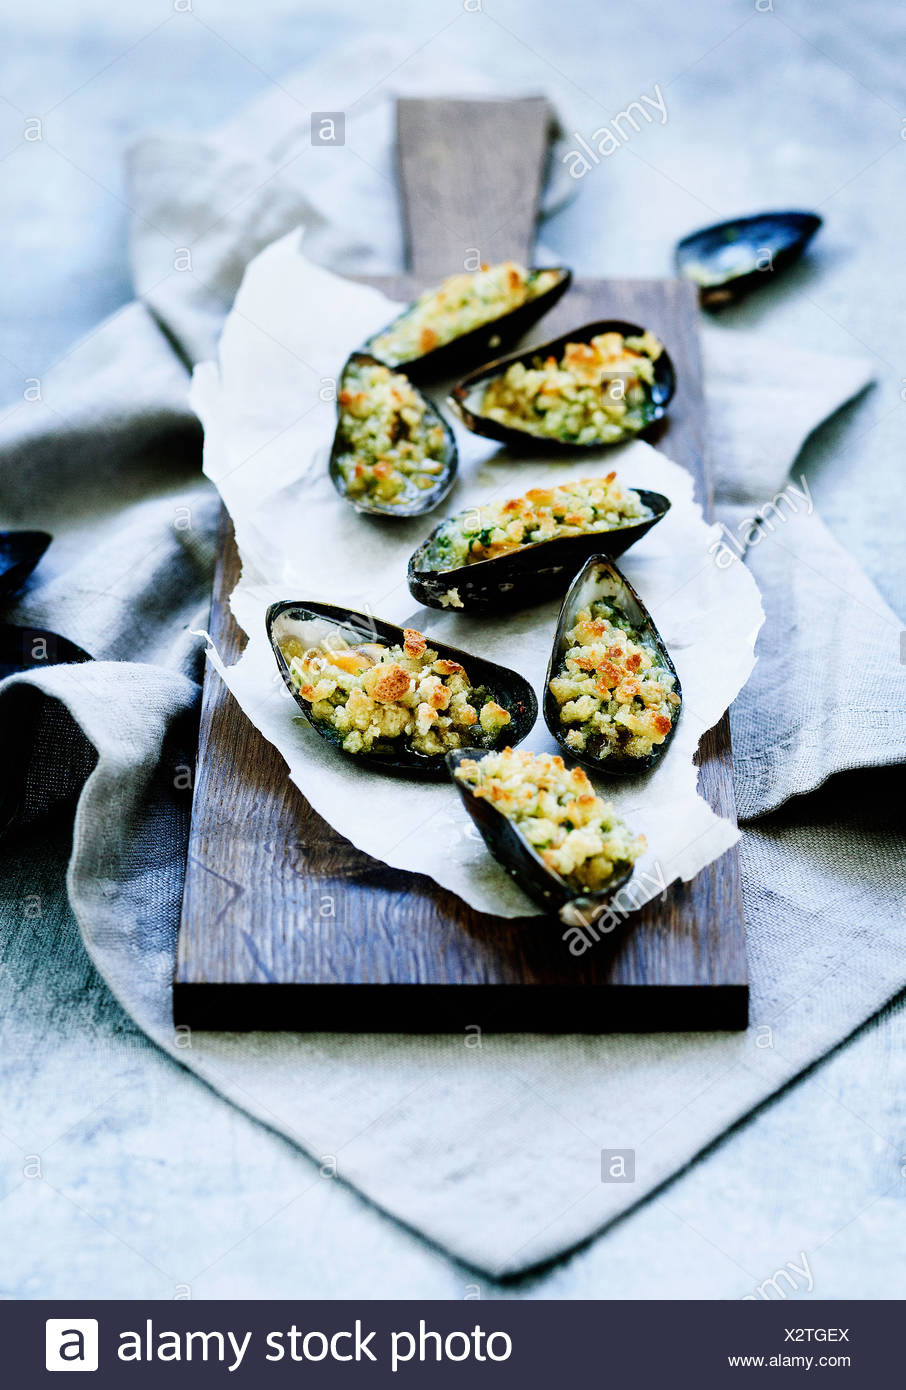 Plate of baked mussels - Stock Image